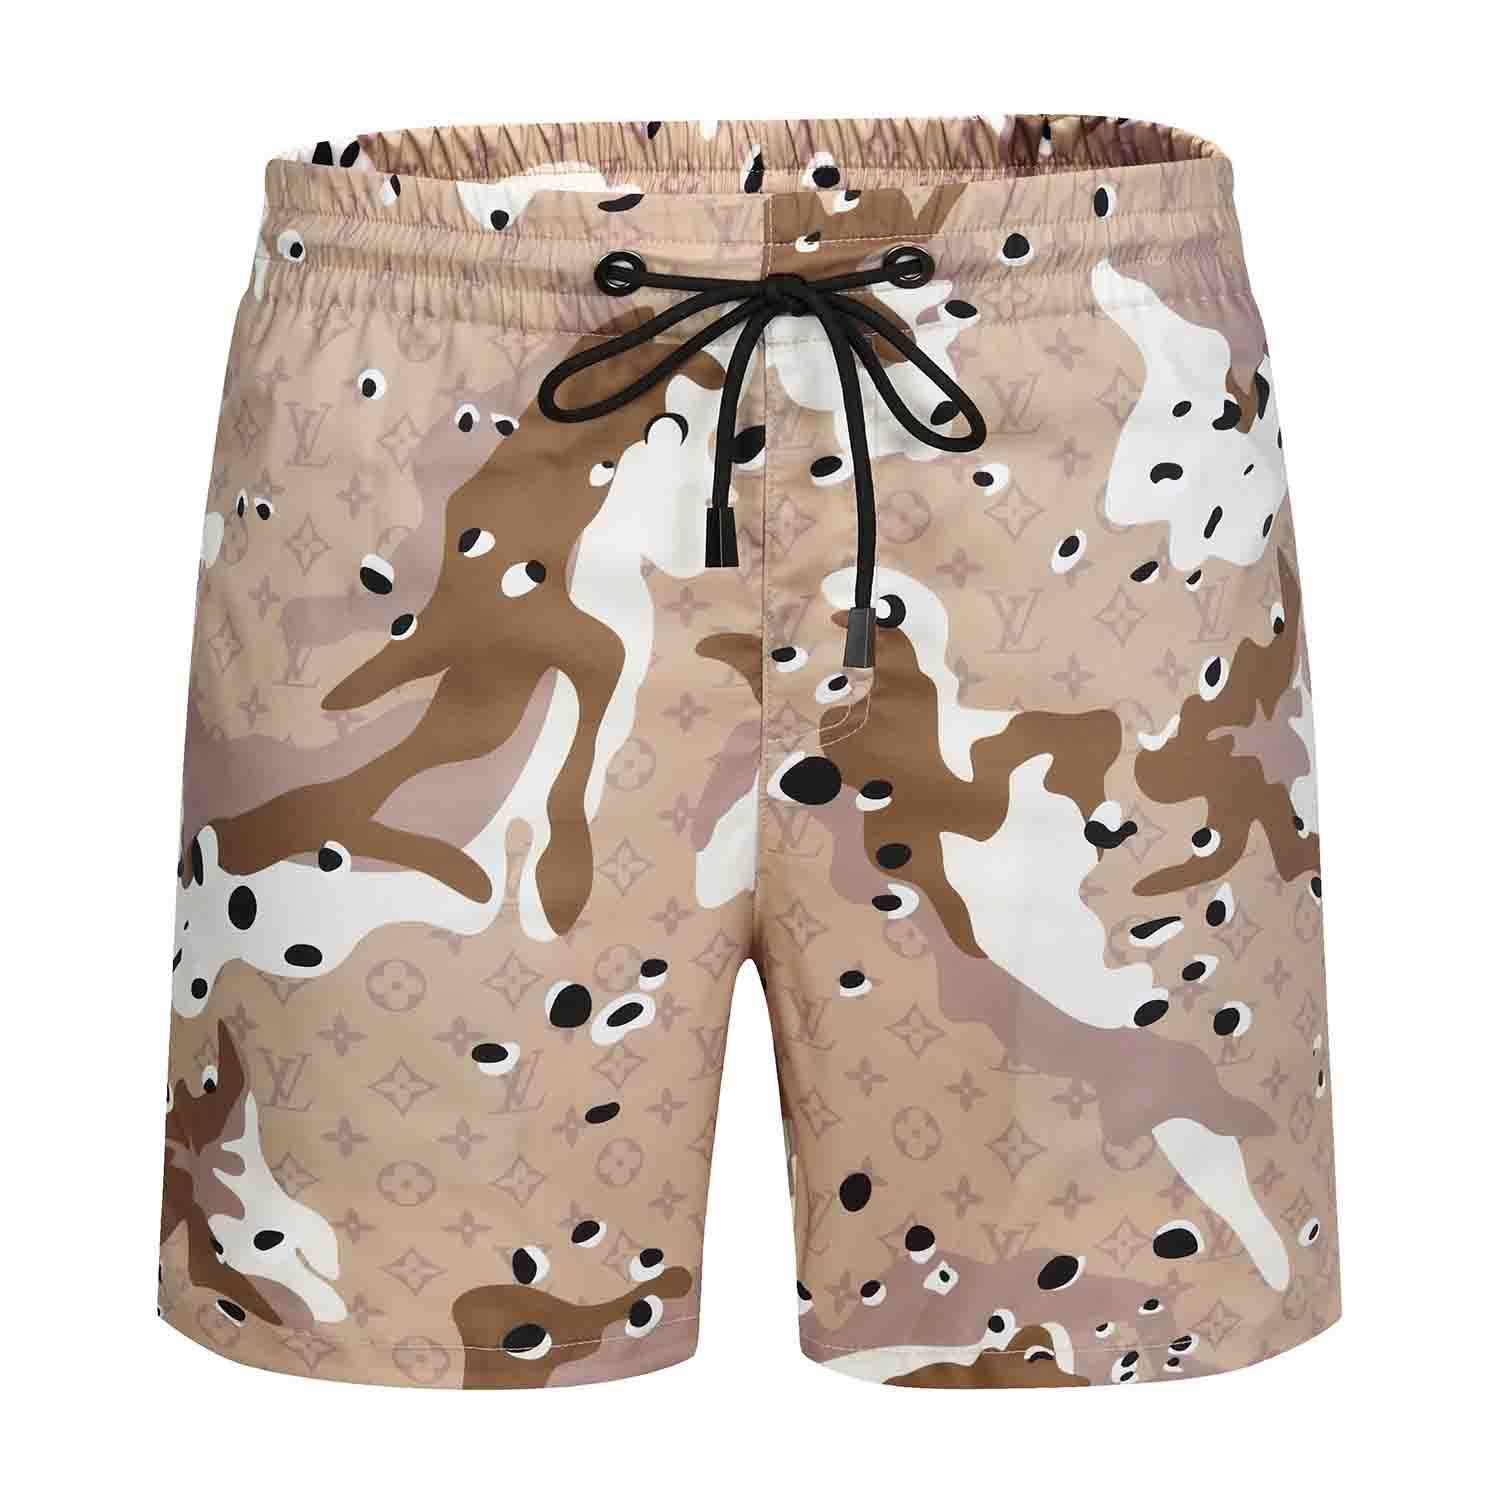 2020 Luxury Mens Shorts Designer Mens Summer Fashion Beach Pants Mens Women Camouflage Print Loose Short Pants From Zyl8888 16 32 Dhgate Com